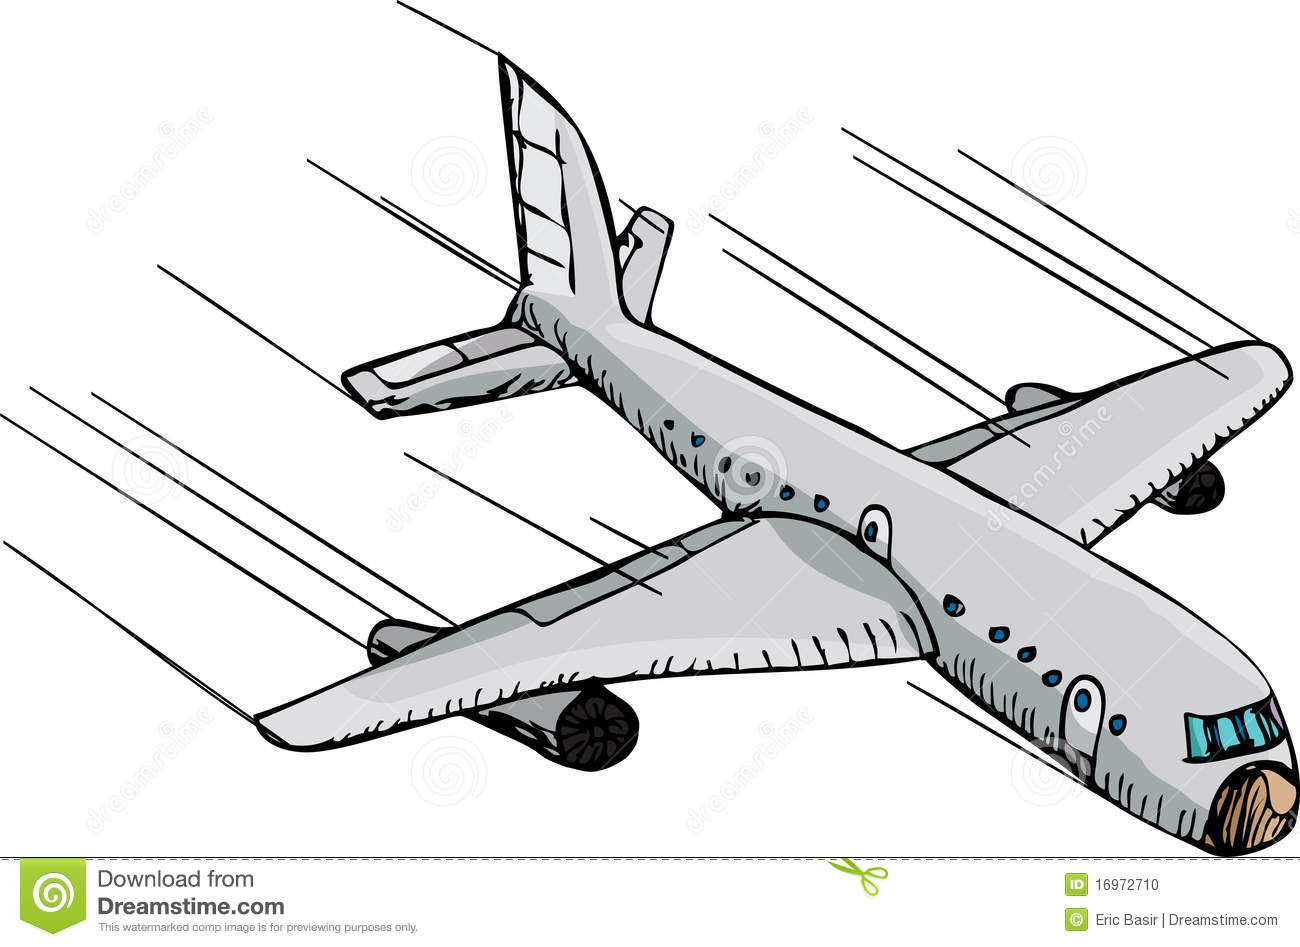 Clipart crash avion.